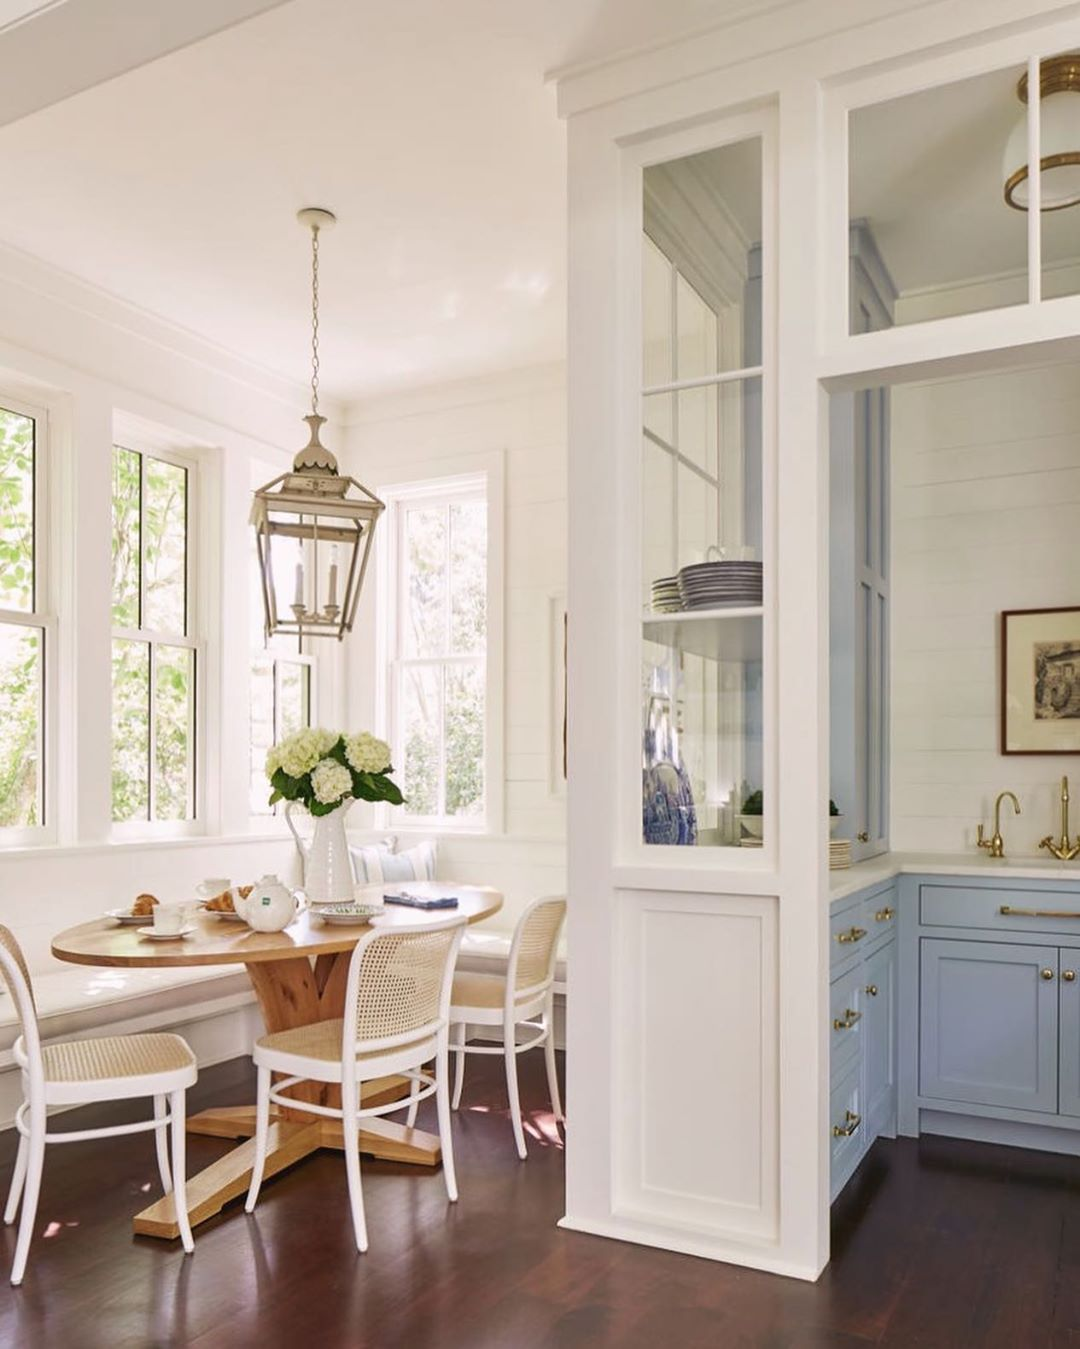 Breakfast Nooks Living & Décor - Cool Chic Style Fashion - Blog